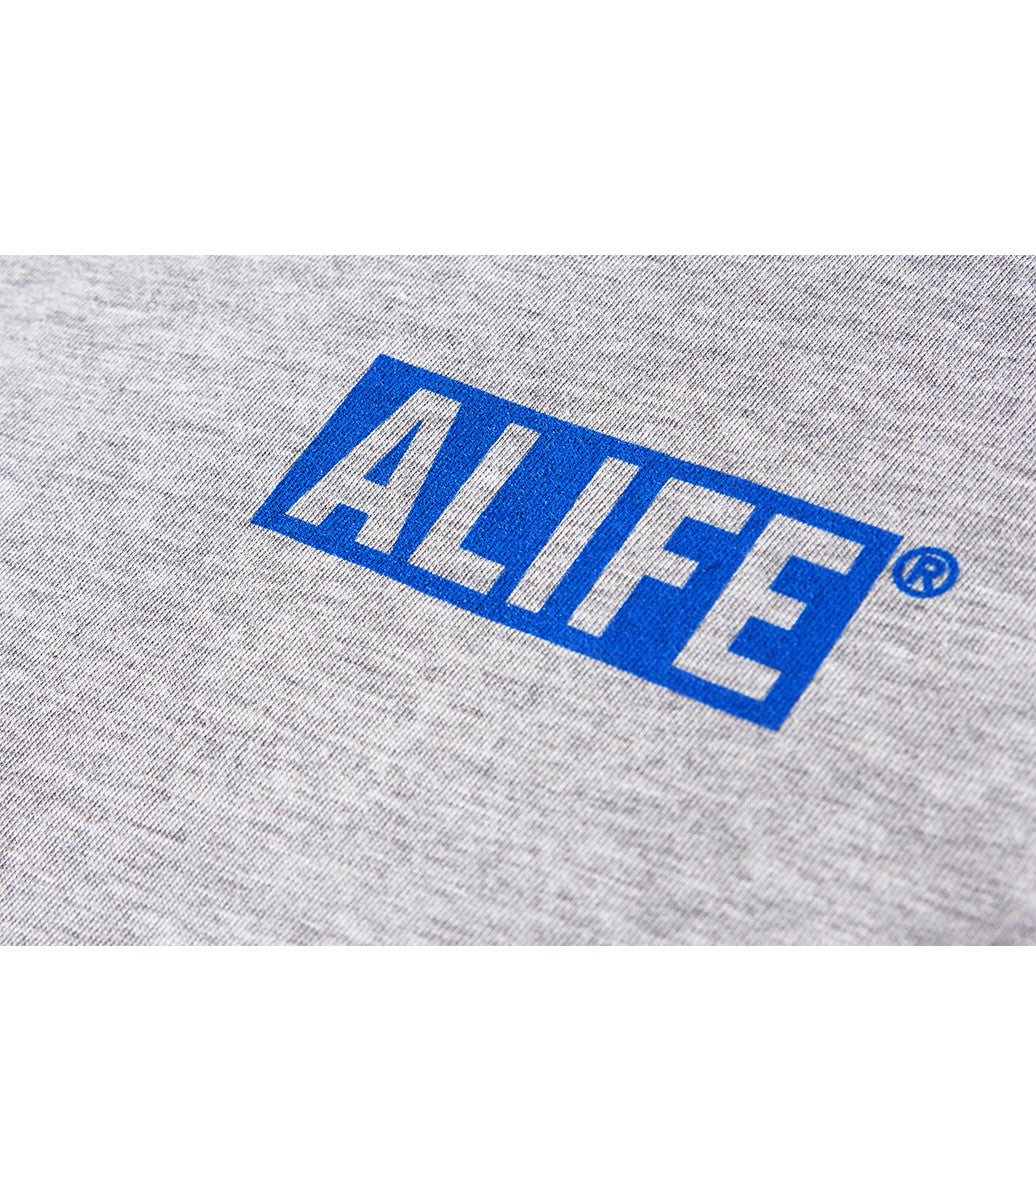 ALIFE® BOX LOGO T-SHIRT [GREY / BLUE]